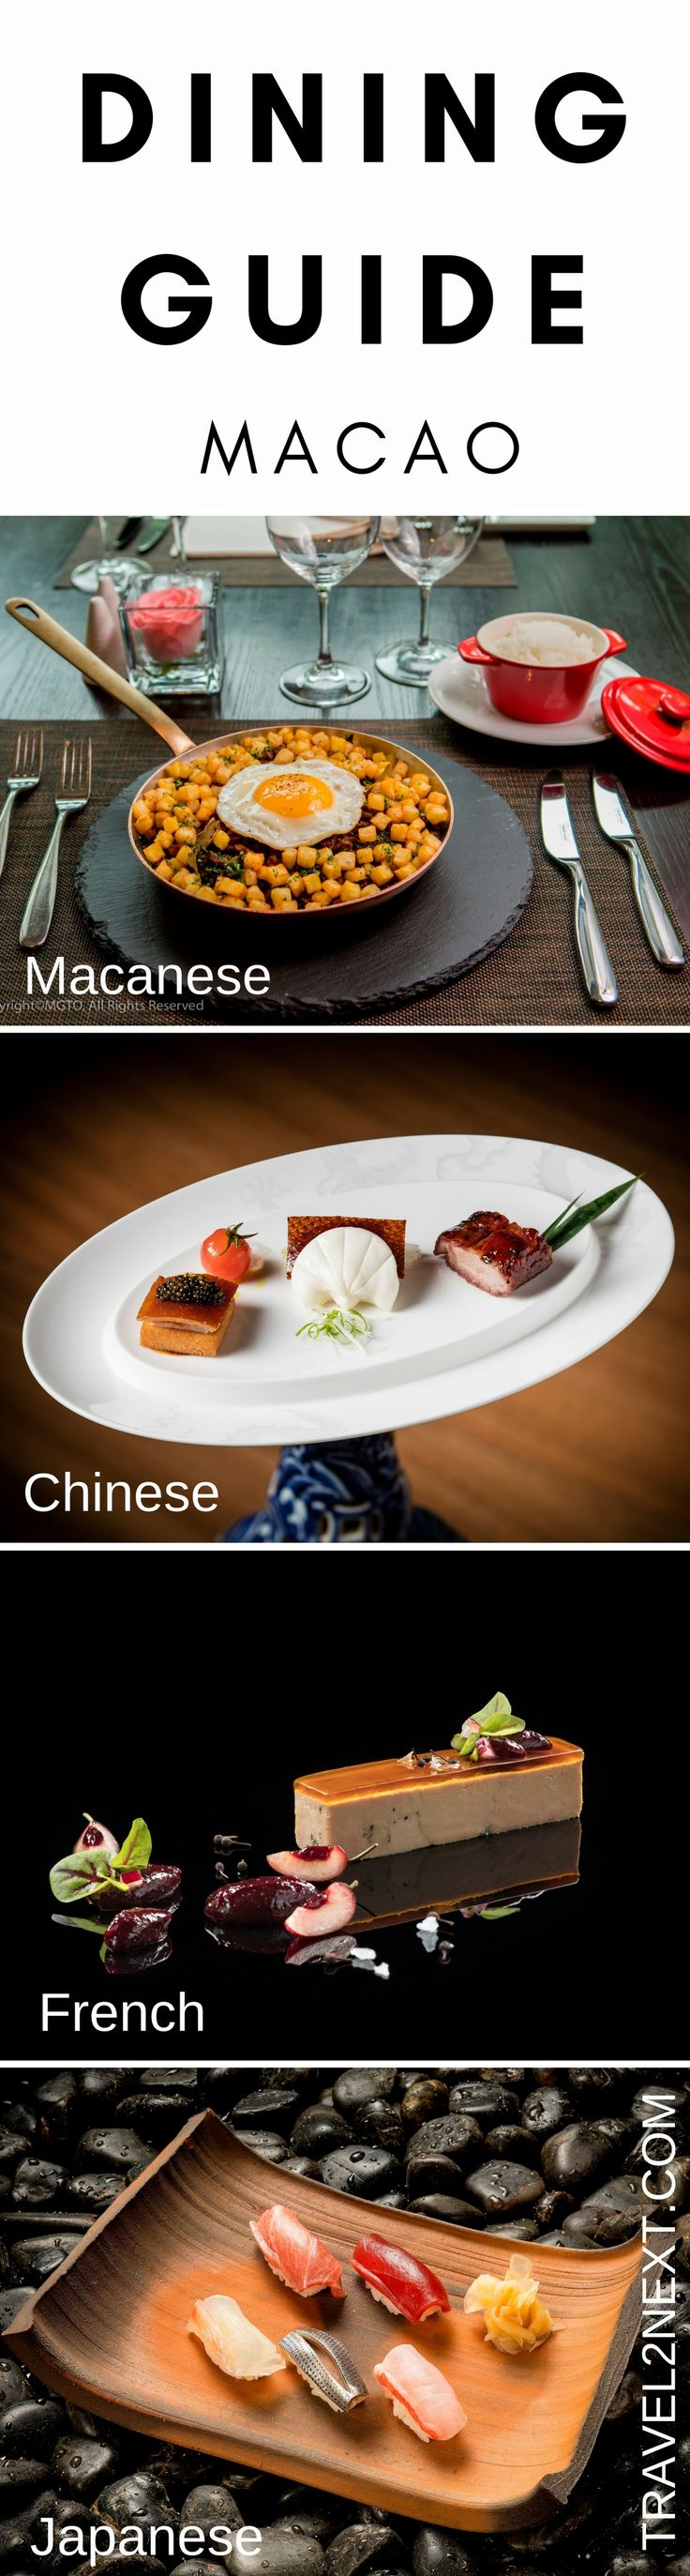 Macao Restaurant Guide – What to eat in Macao. Dining in Macao poses one key challenge for both visitors and locals: where to eat next?